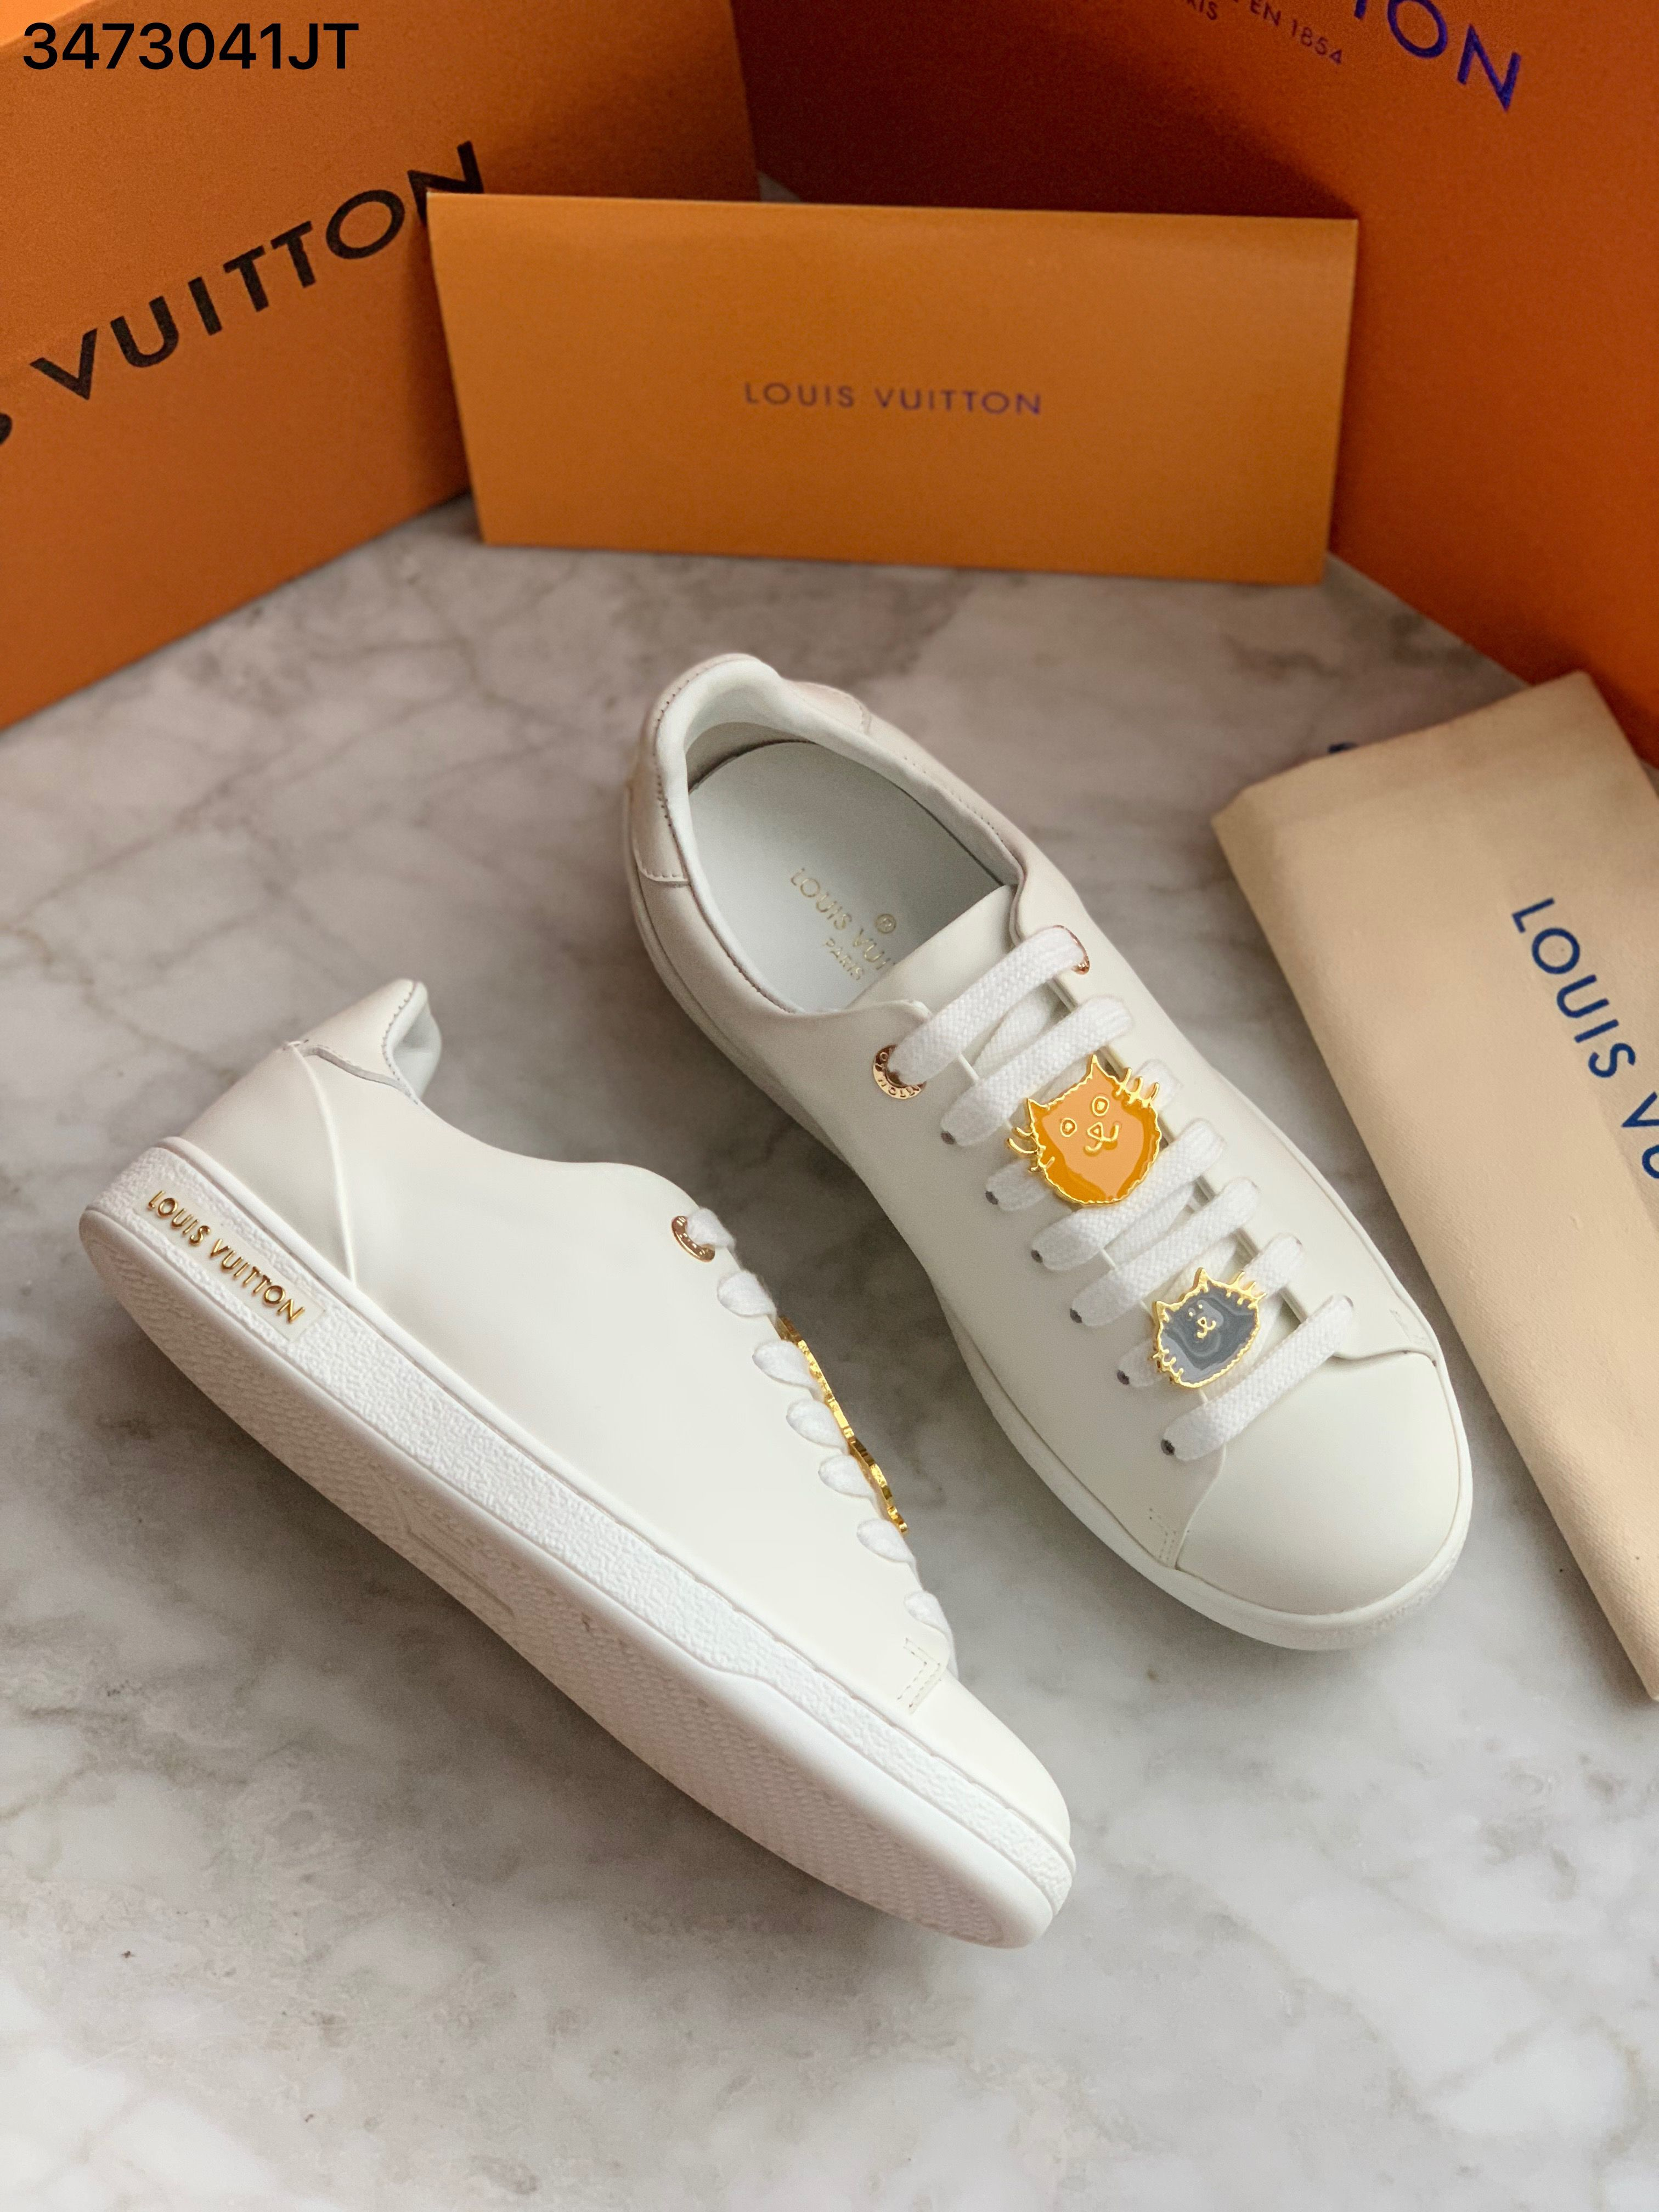 Pin on Louis Vuitton shoes